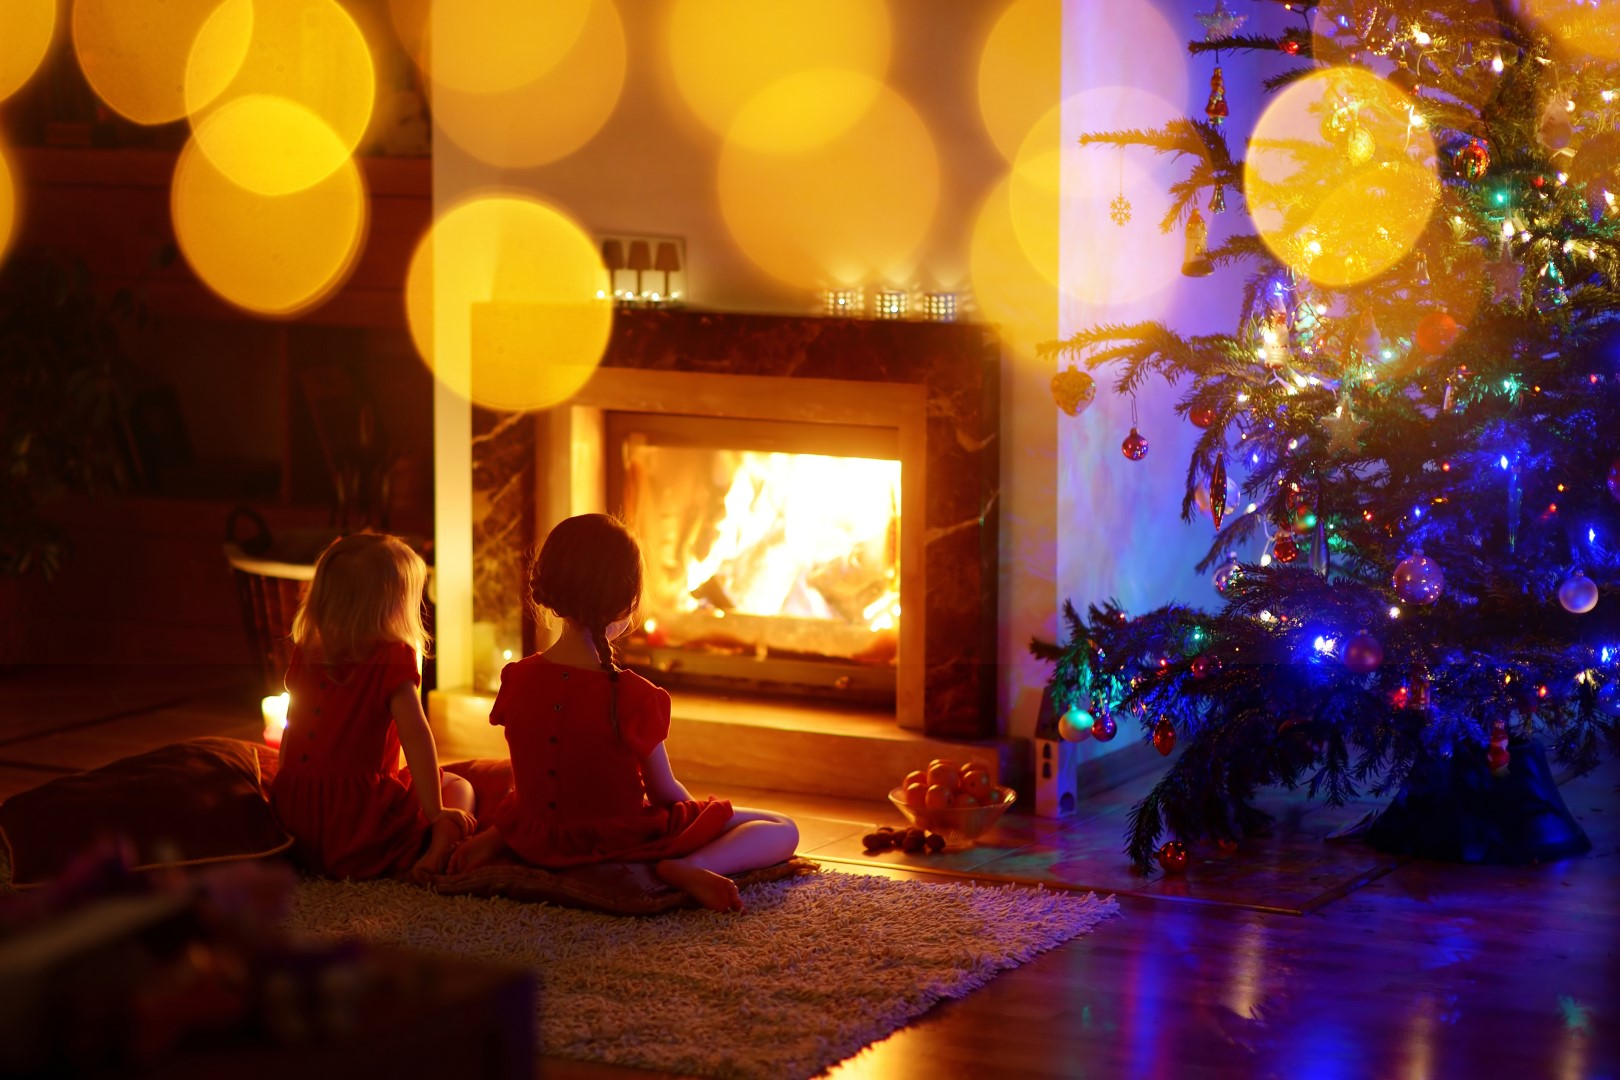 Two young girls in by the Christmas tree in front of the warming fire